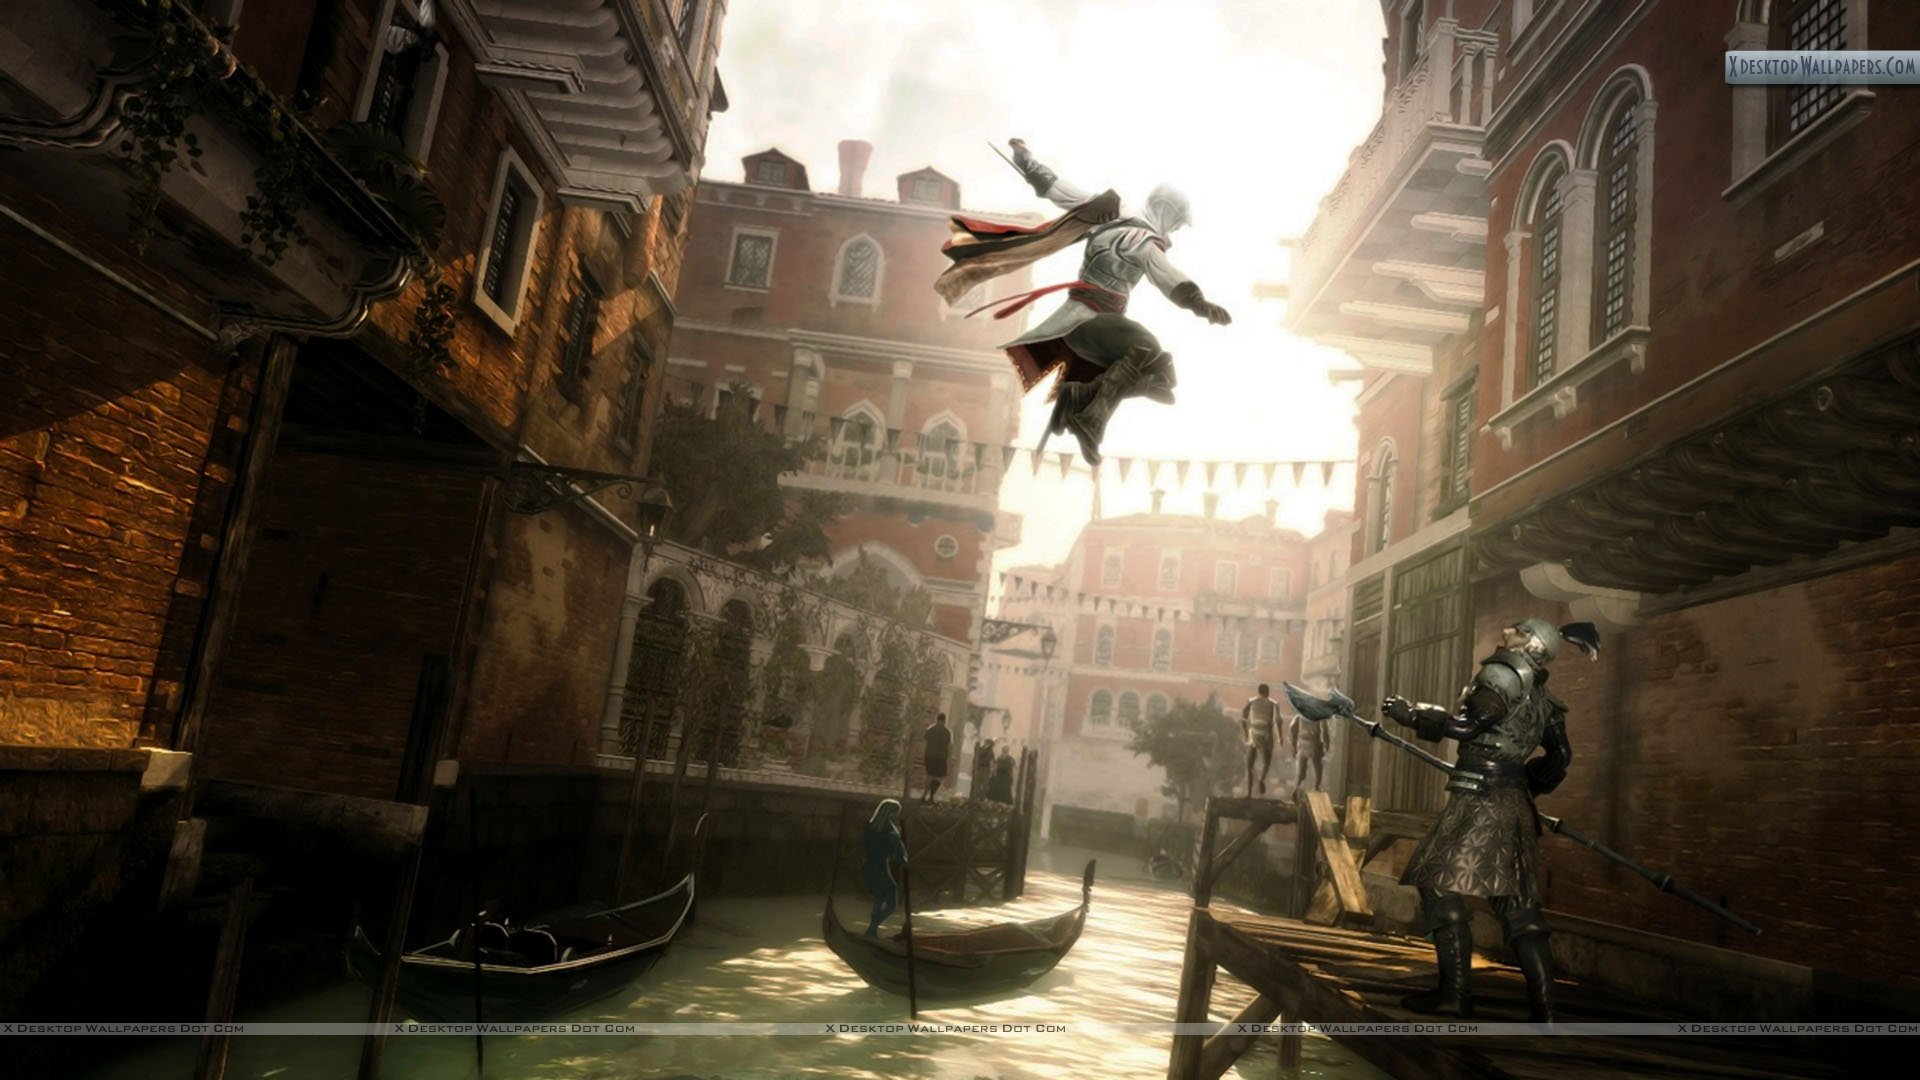 ezio assassin's creed 2 killing jump wallpaper